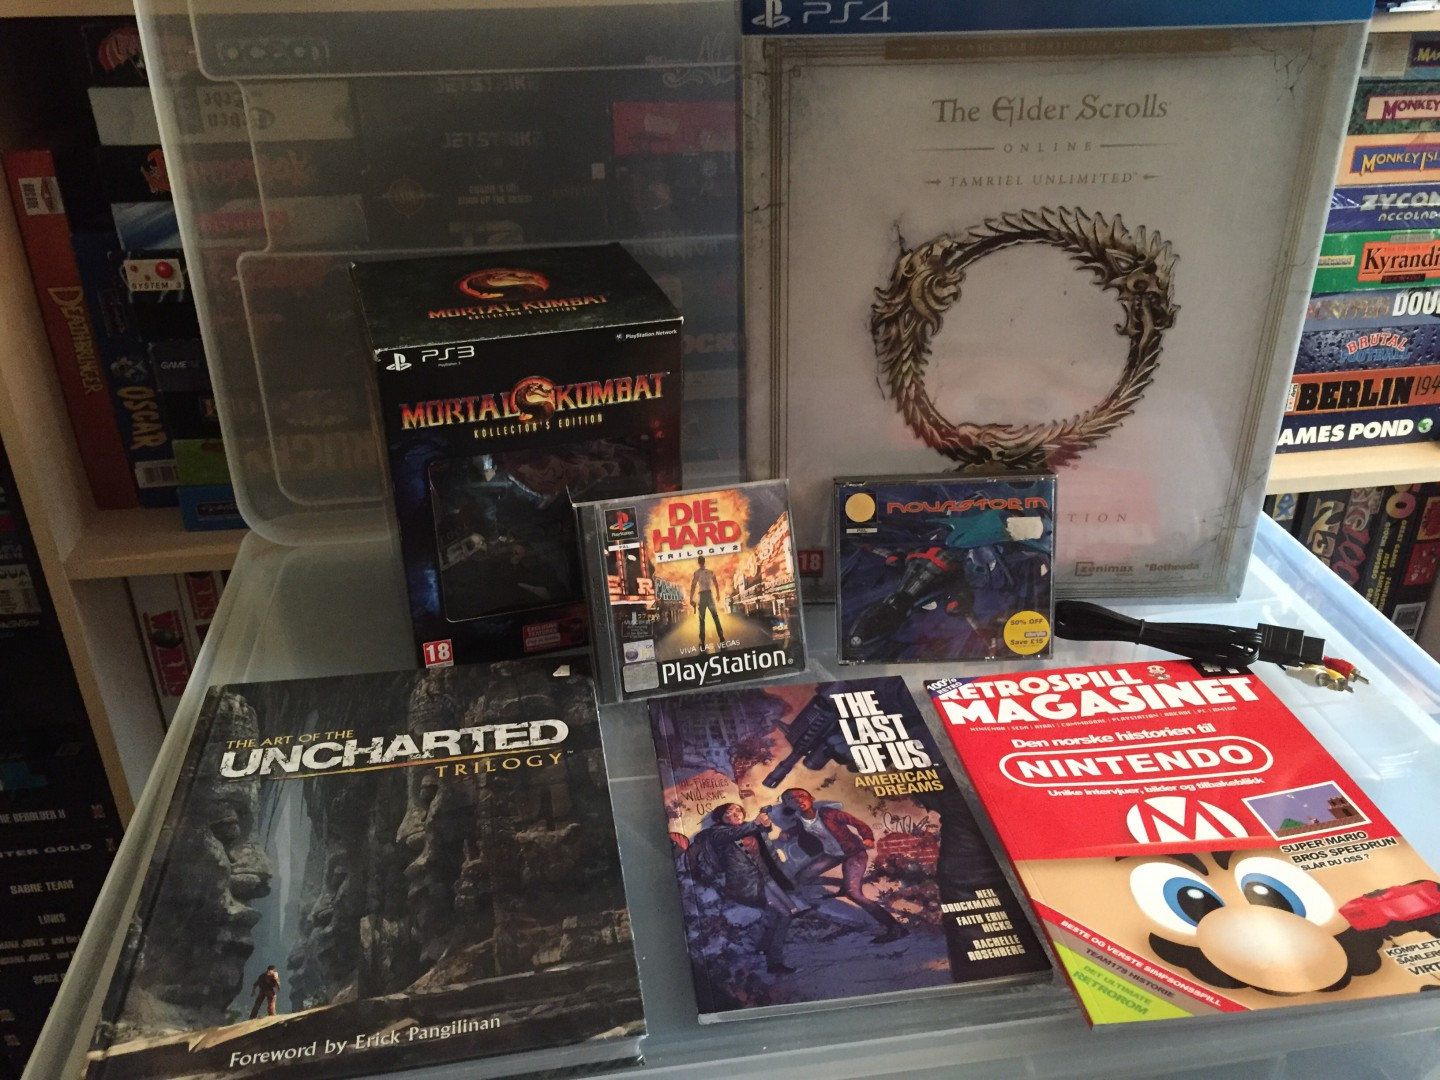 Mortal Kombat Collectors Edition, Elder Scrolls Online Unlimited edition, Die Hard Trilogy 2, NovaStorm, Uncharted trilogy Art book, Last Of Us Comic, Retro Magasinet and a Nintendo 64 Comp. Cable.